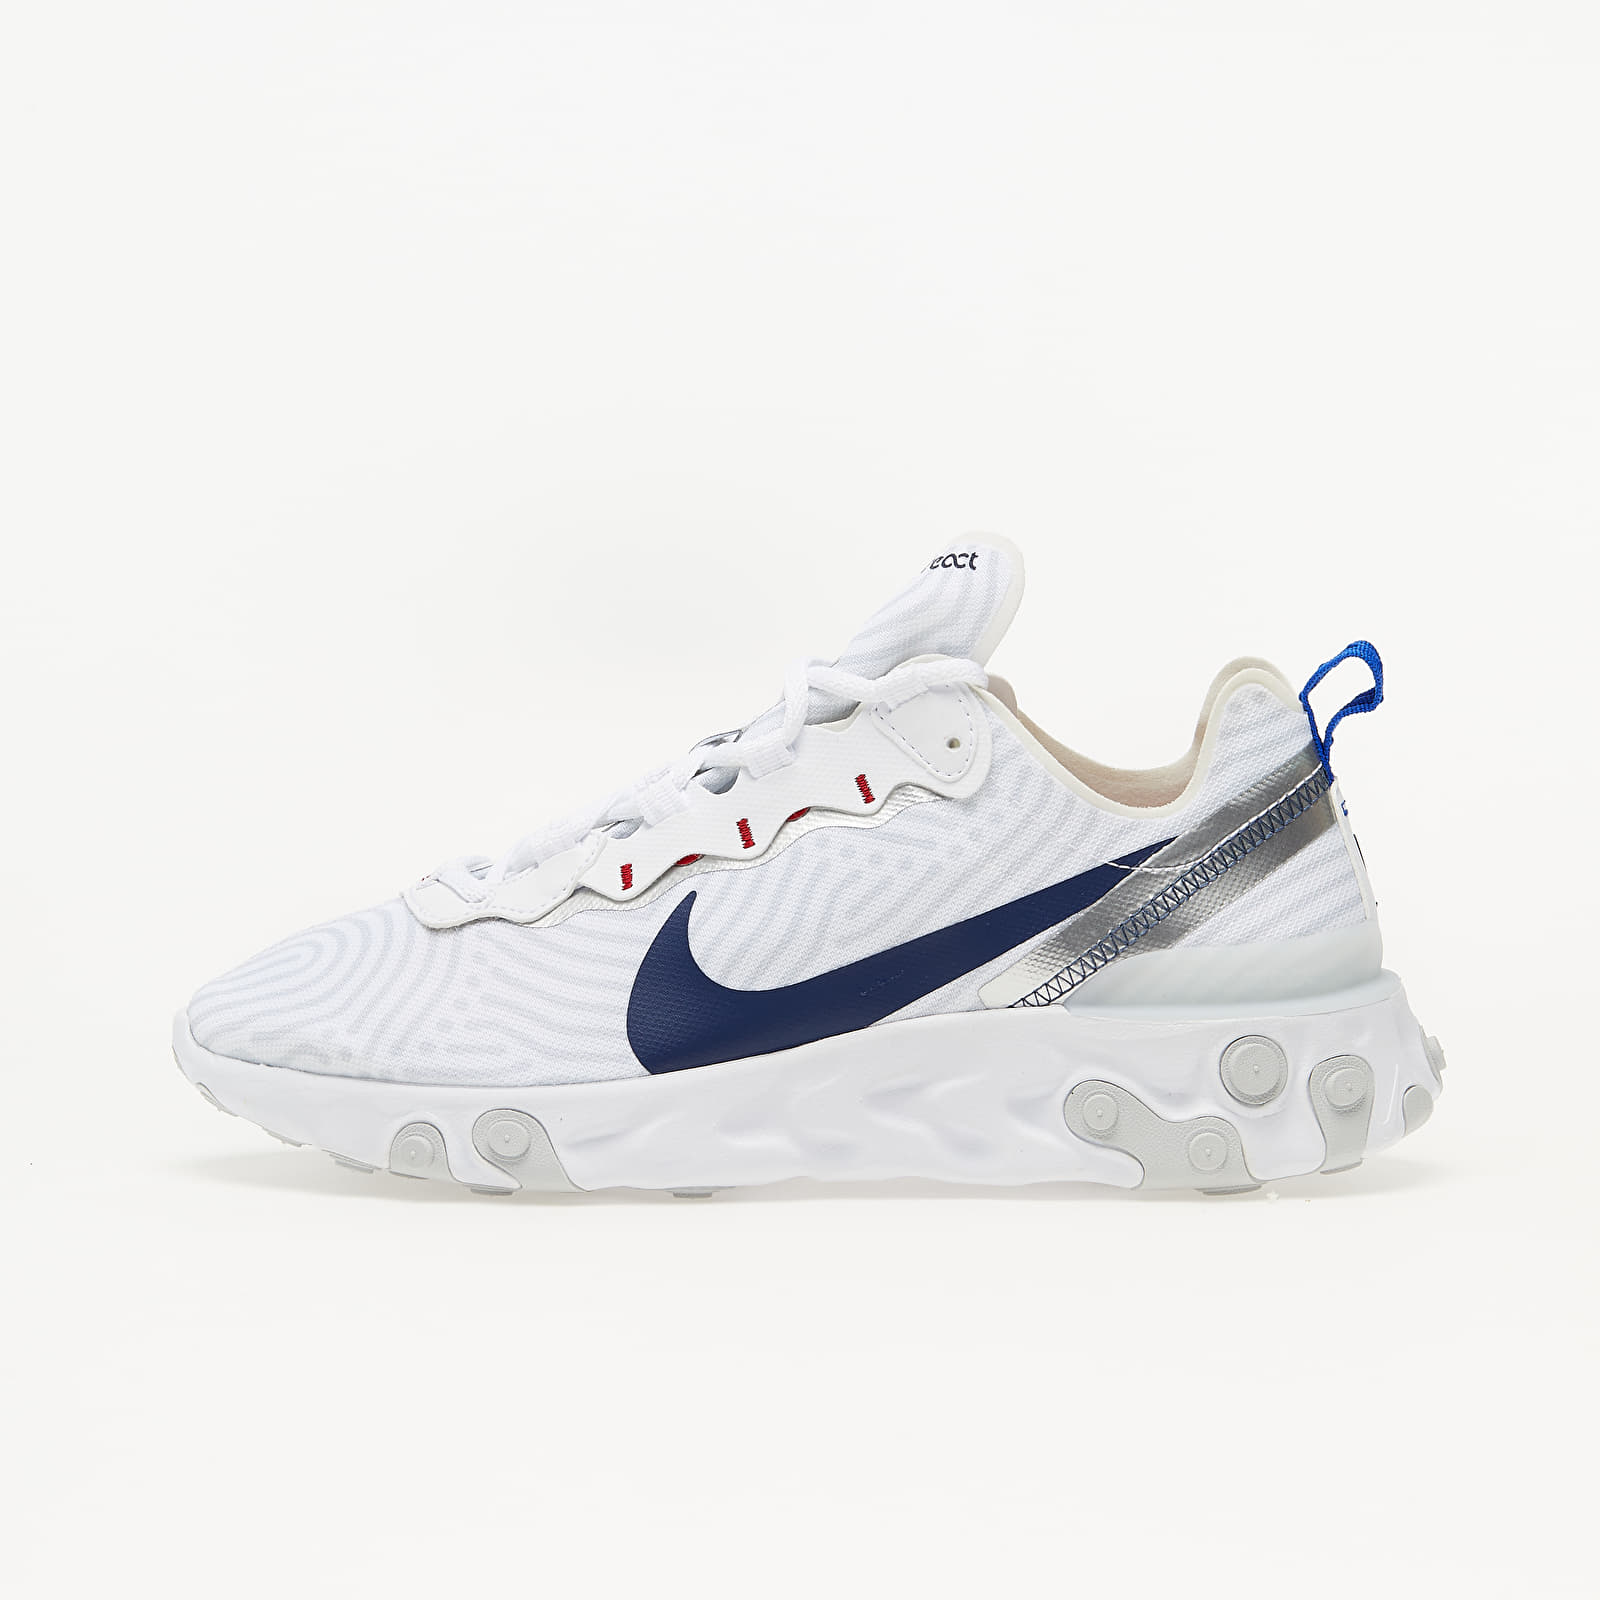 Zapatillas Hombre Nike React Element 55 White/ Midnight Navy-Bright Blue